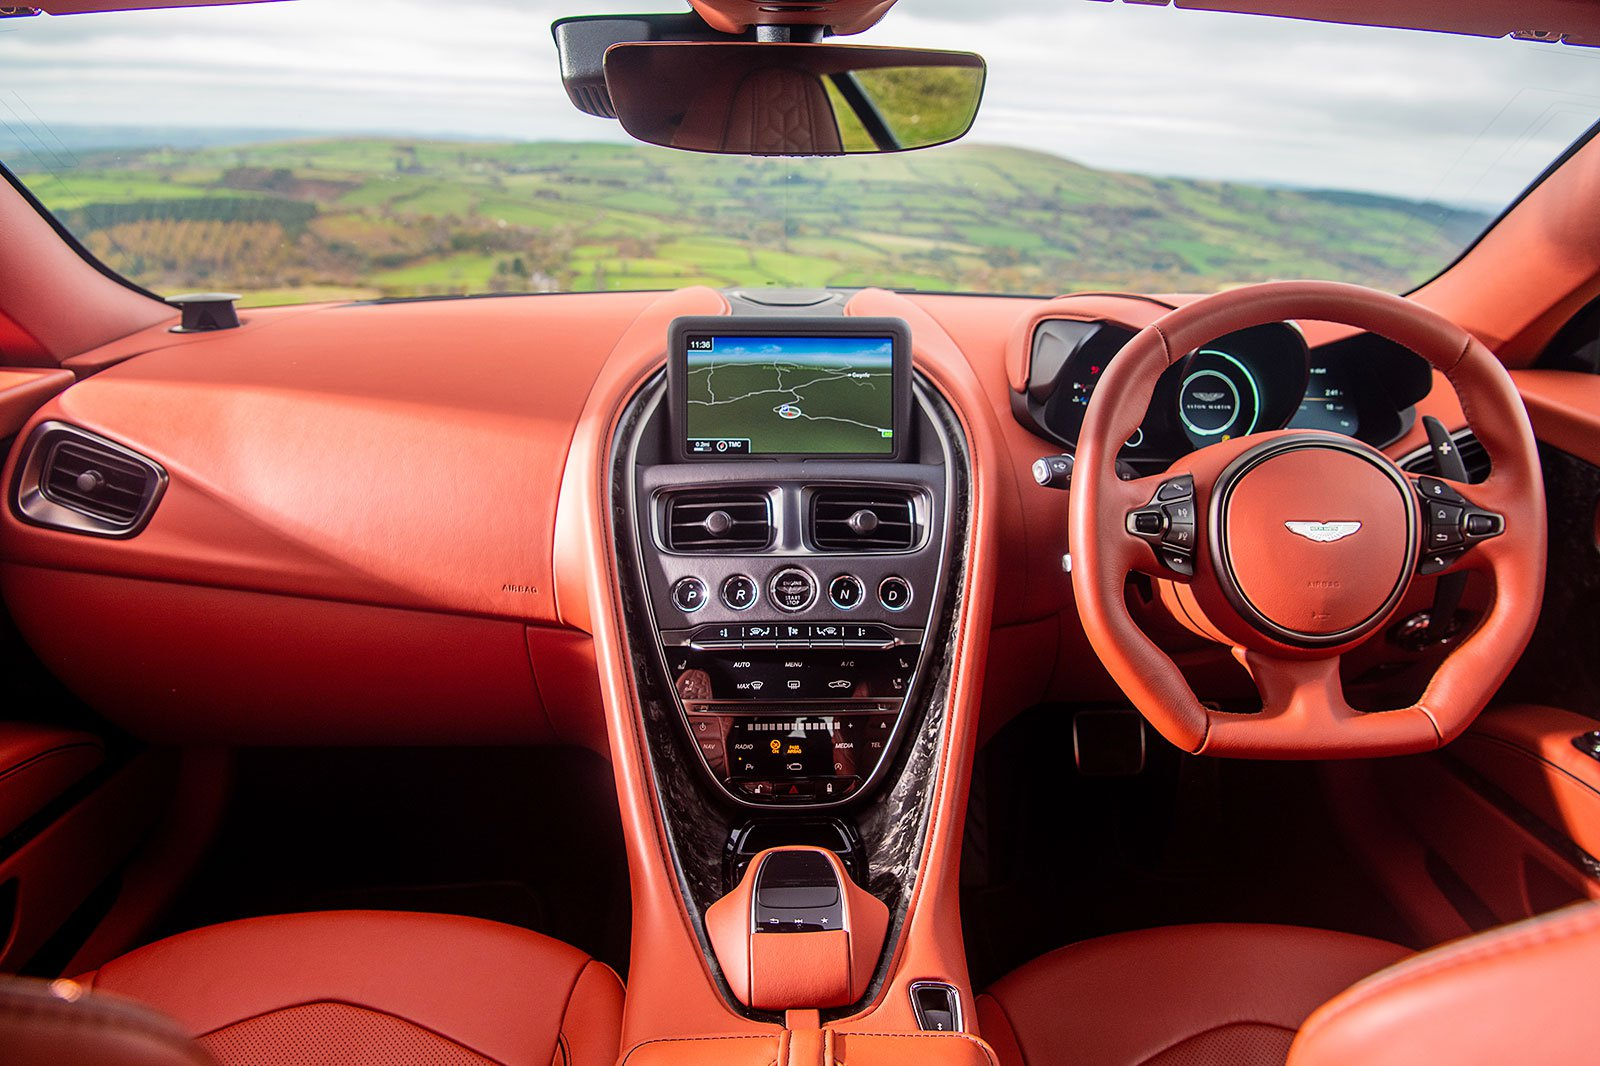 Aston Martin DBS Superleggera dashboard